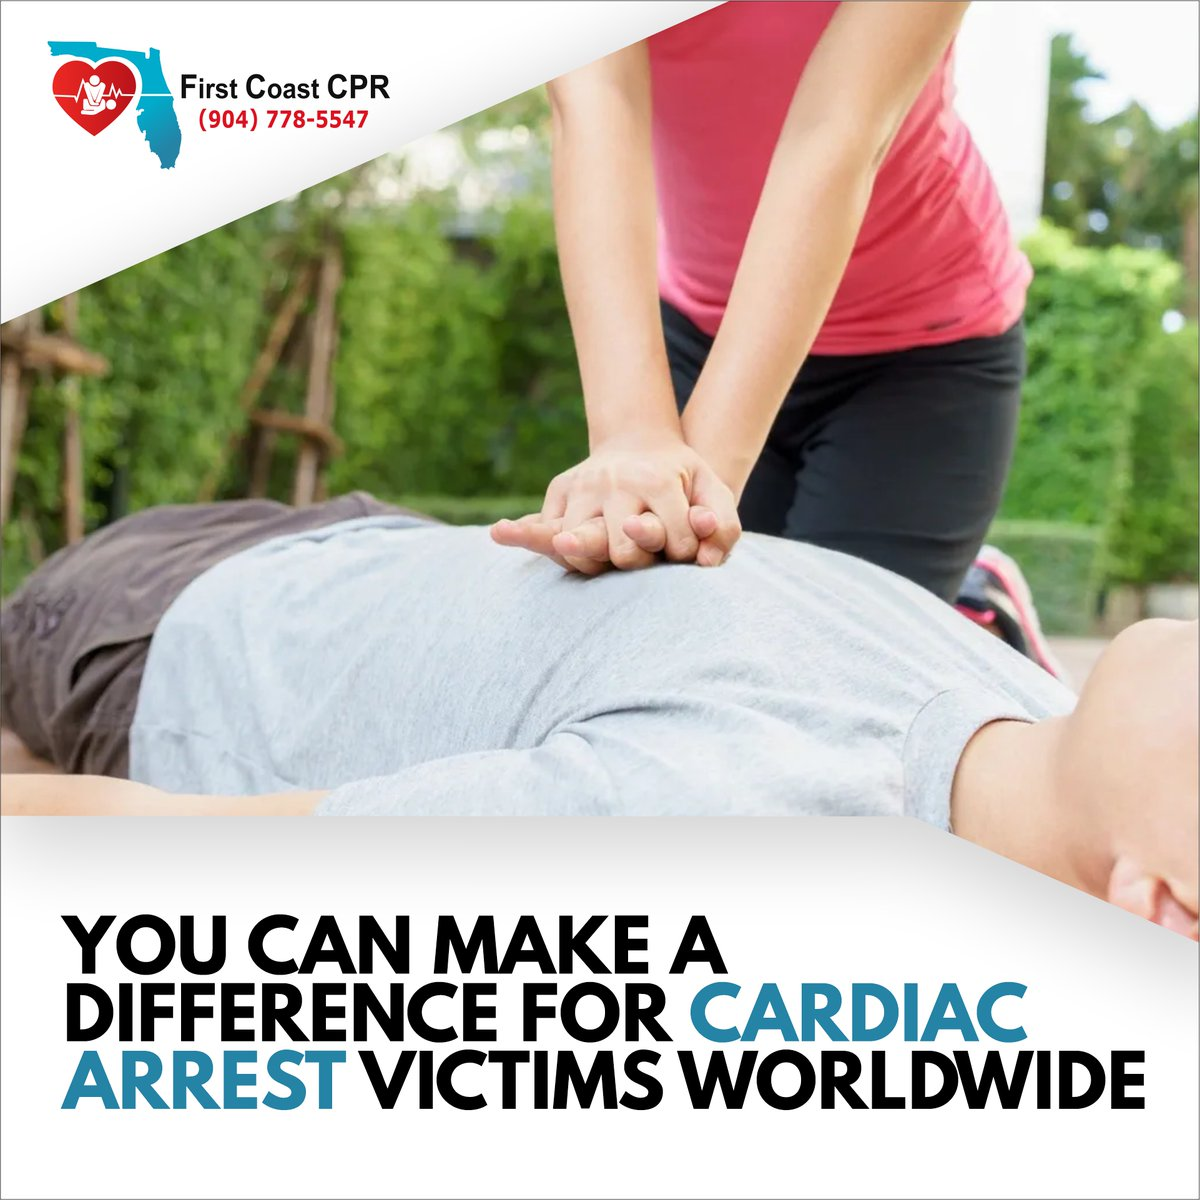 Sudden cardiac arrest (SCA) is a major problem, yet few people know how to identify and address this issue correctly. -- http://firstcoastcpr.com  #firstcoastcpr #cpr #firstaid #firstaidtraining #herotrainingcenter #BLS #AED #AHA #cprcetification #trainingcenter #nurse #nursingpic.twitter.com/JFheB2C6Gl